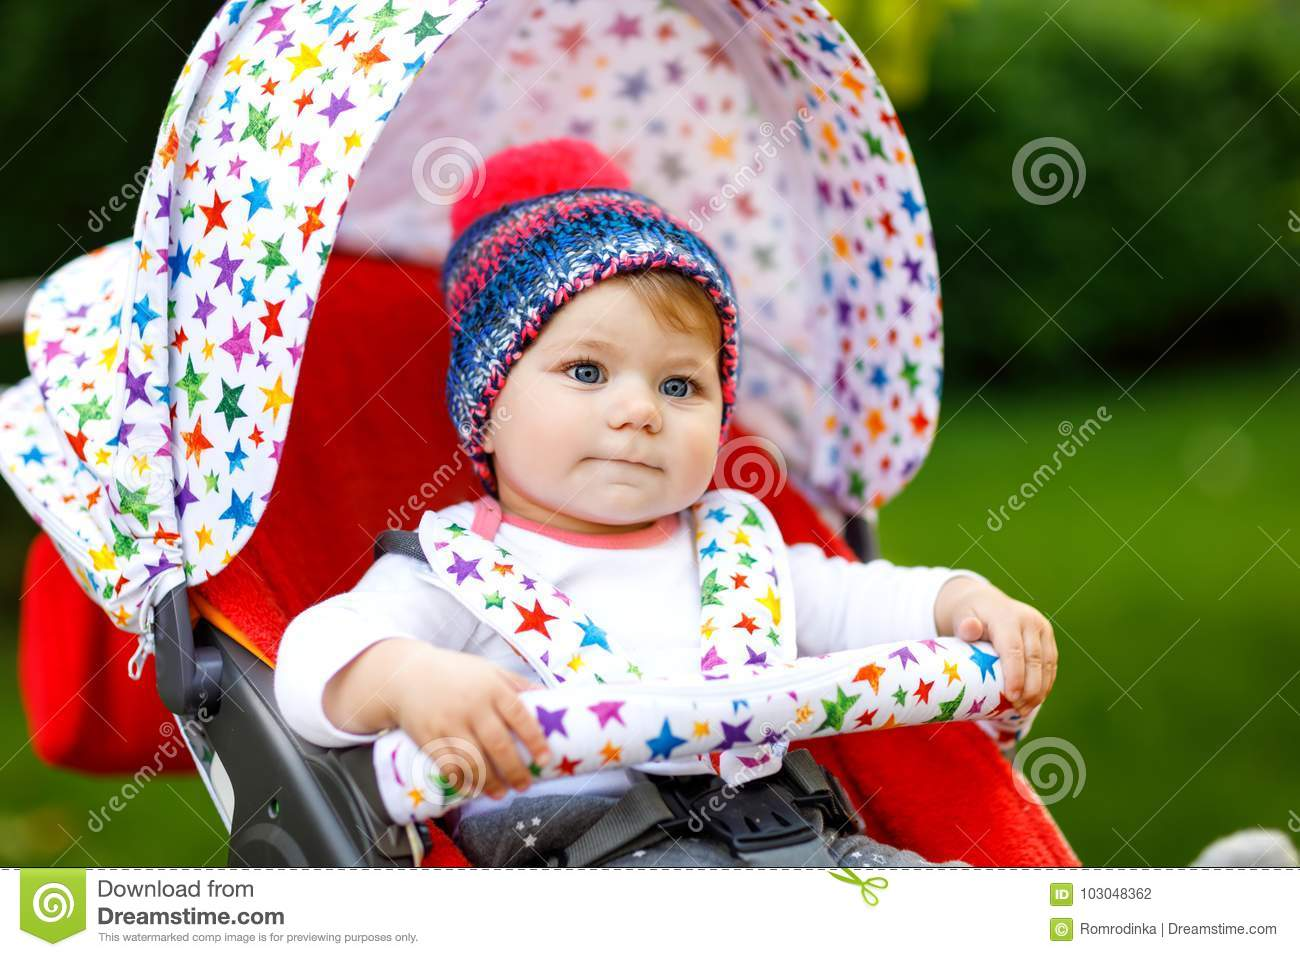 652f62ee3275 Cute Little Beautiful Baby Girl Of 6 Months Sitting In The Stylish ...